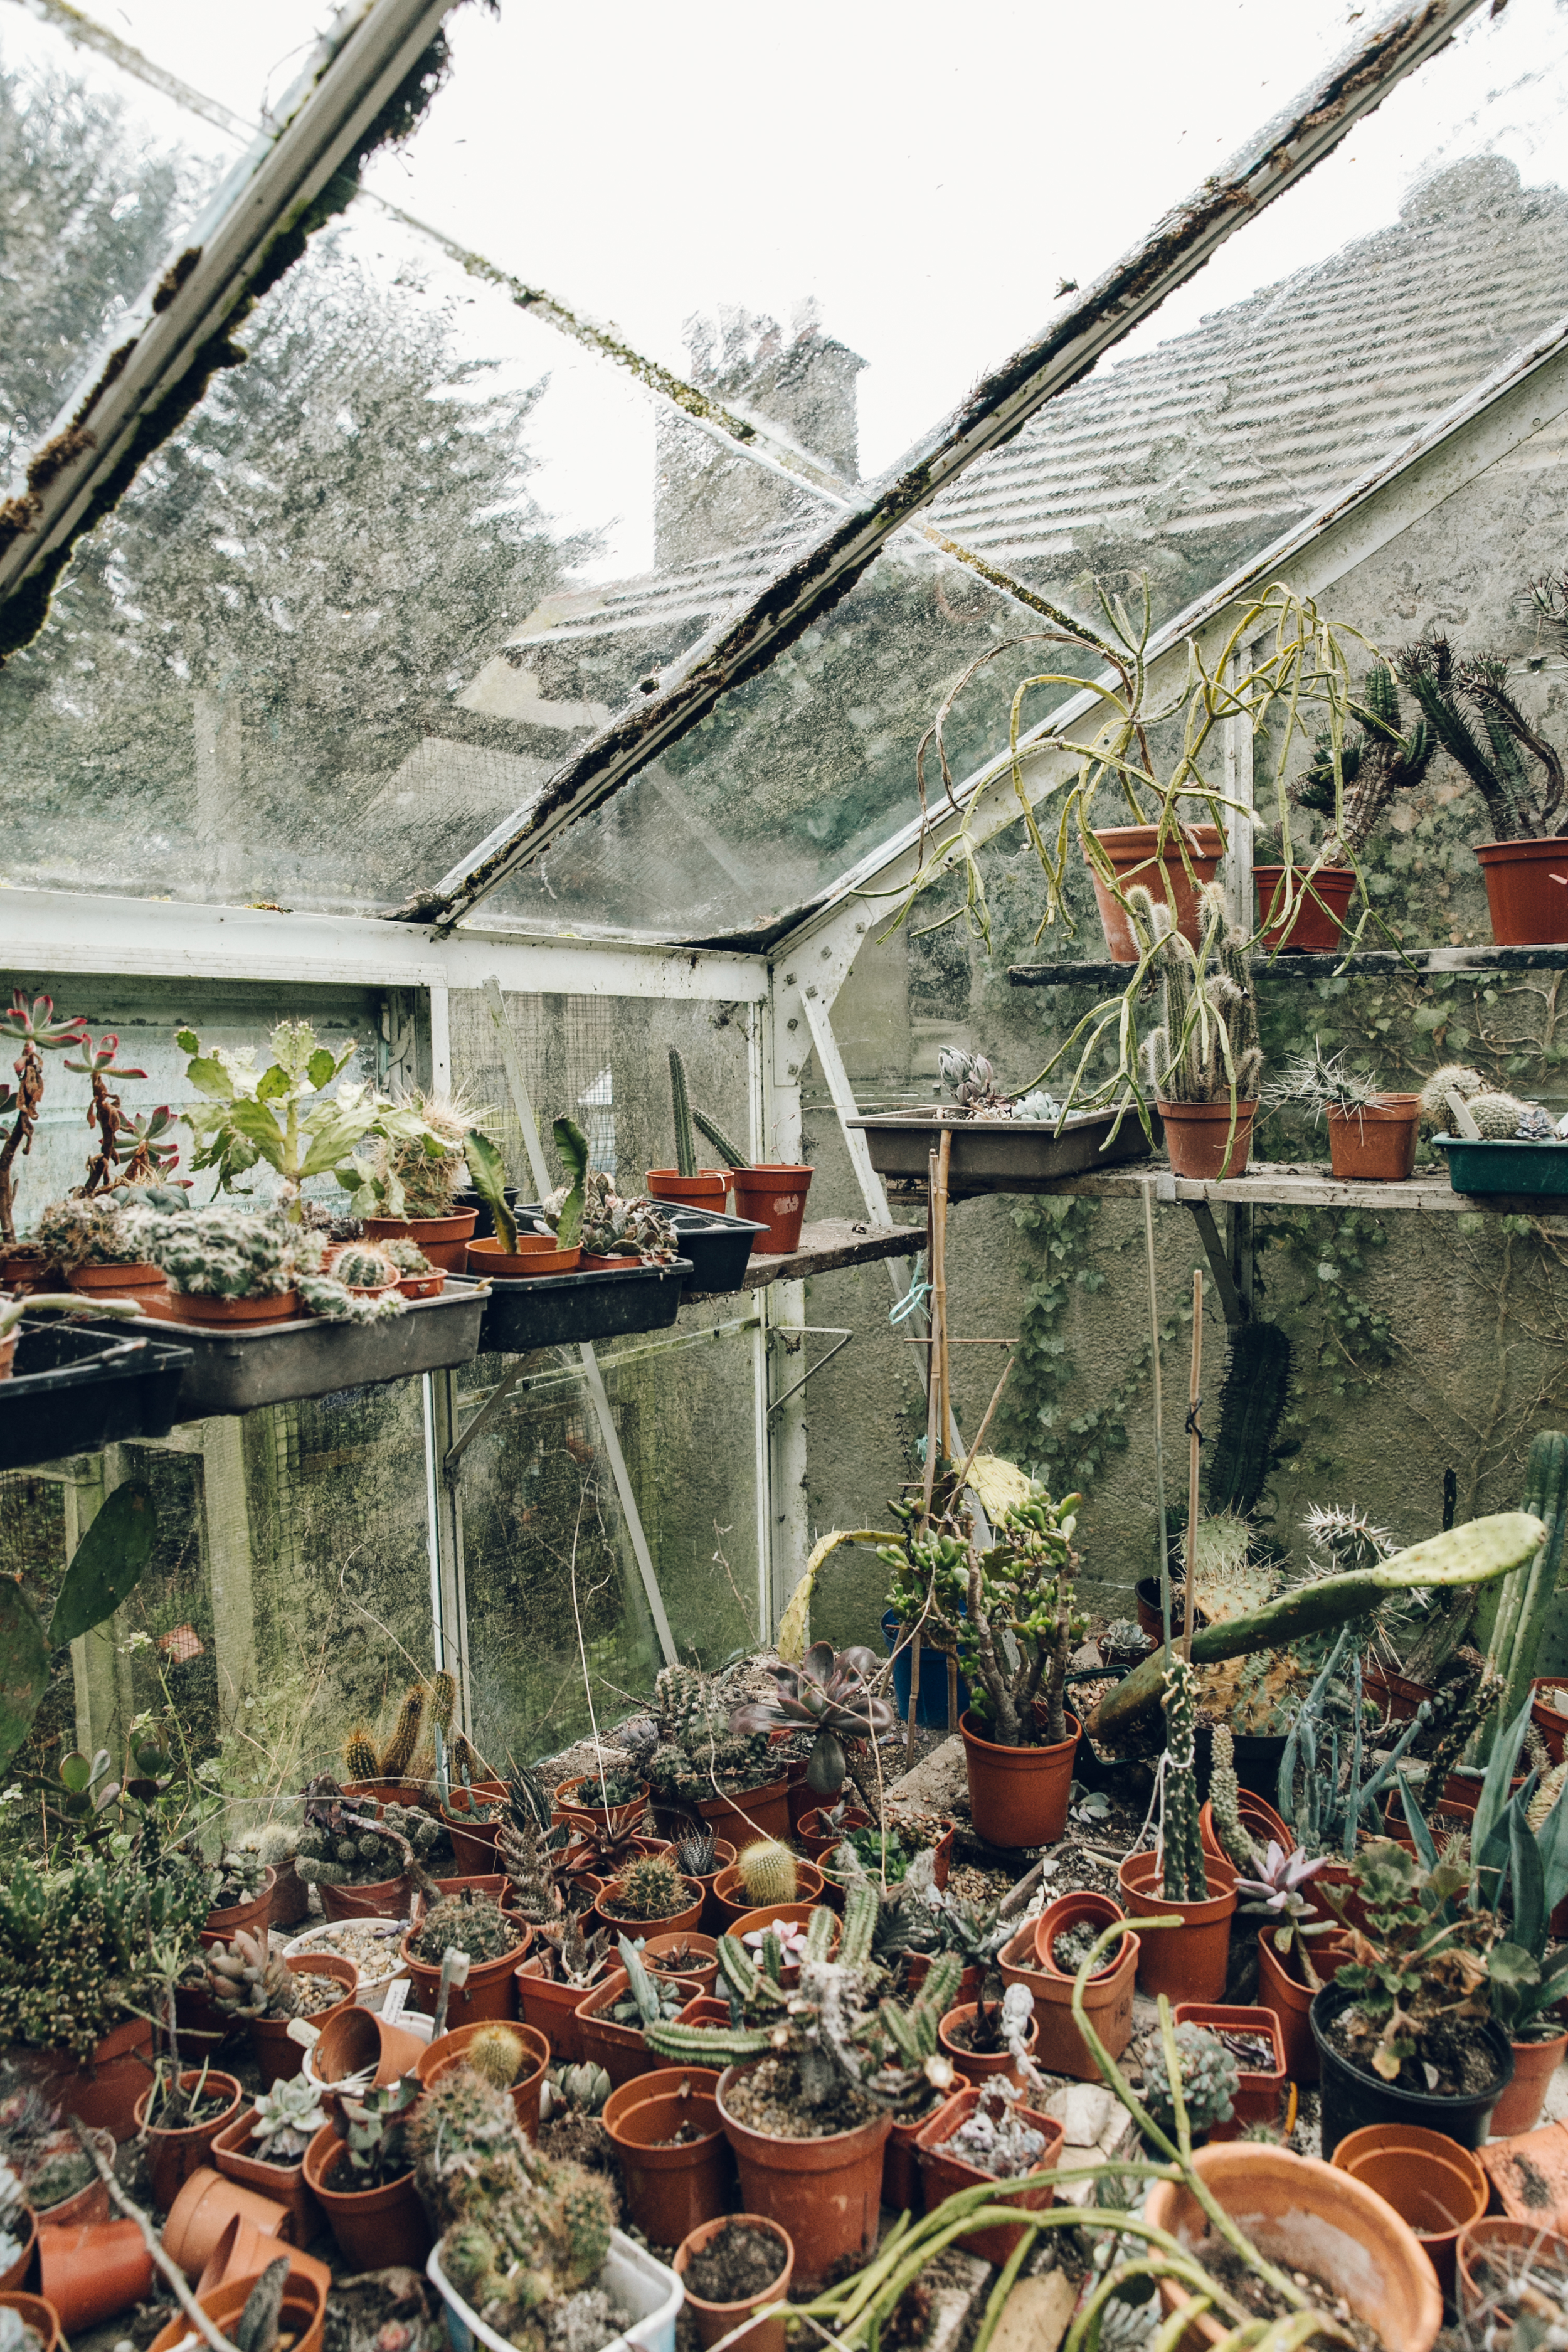 Cacti For Sale — Robin Hood's Bay - Richard's collection of glasshouses sits behind some hedging at the end of his drive and was a welcome cover from the rain when we visited. He told us that he started a long time ago by buying a single cacti for each of his 5 children and that